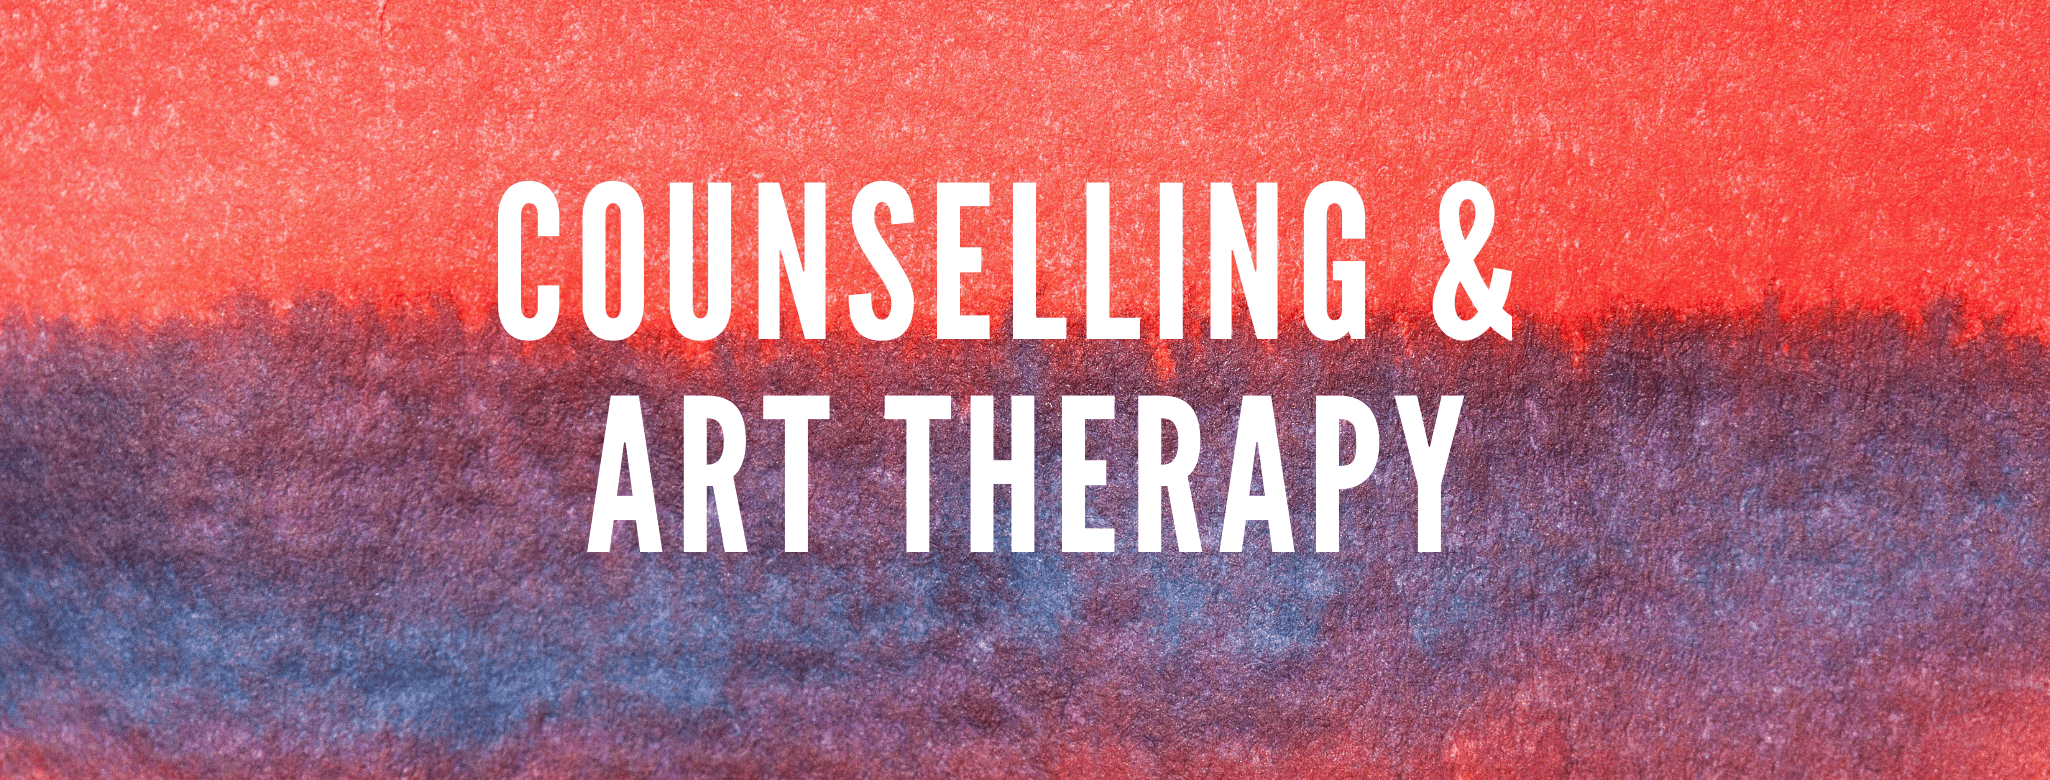 counselling and art therapy